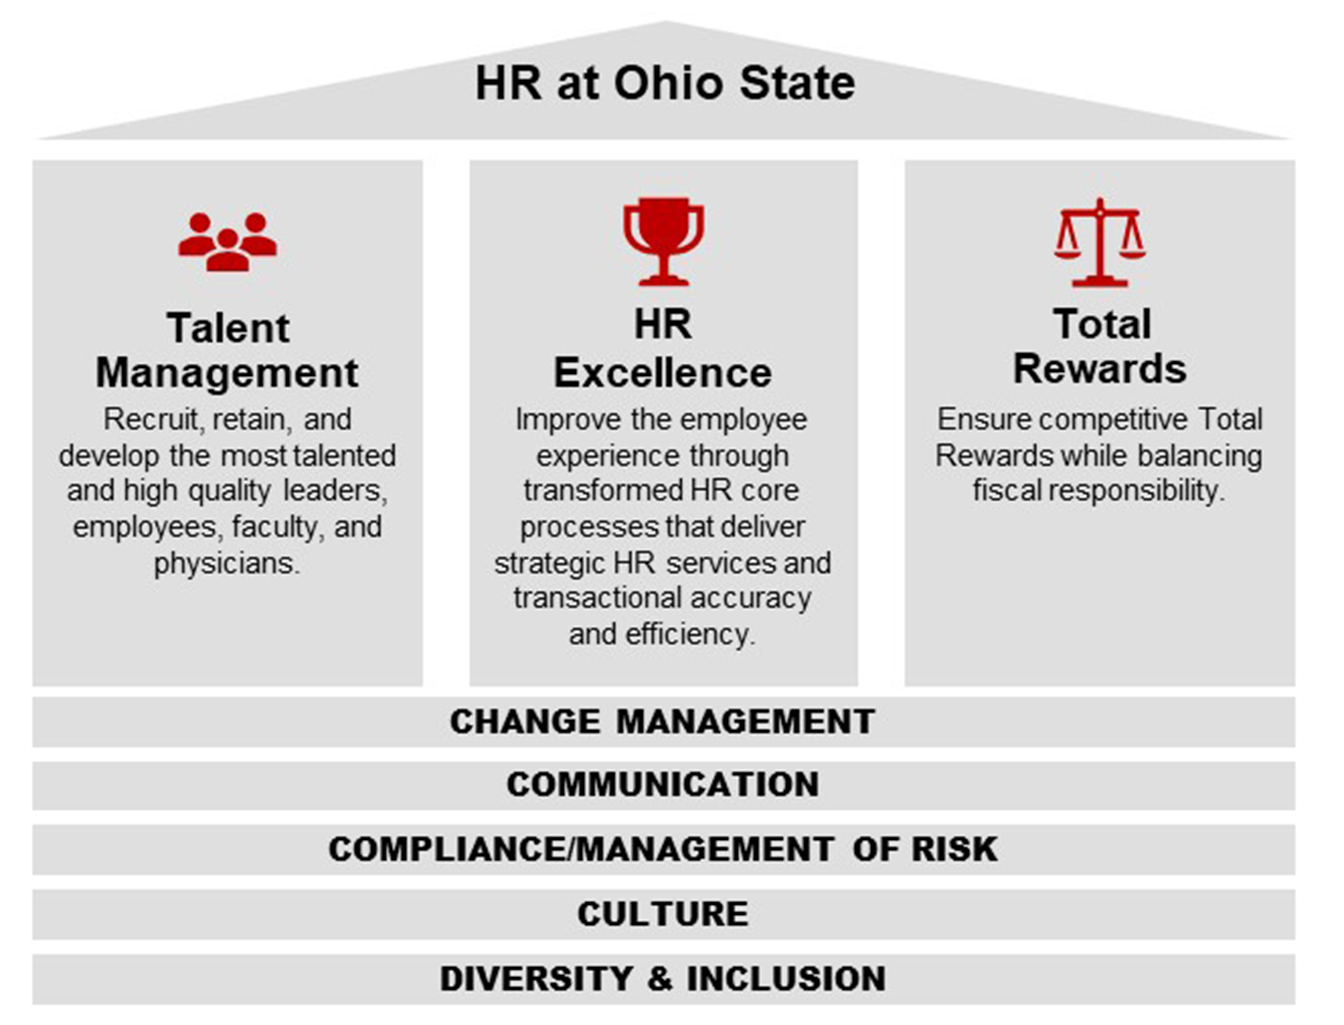 Three pillars include Talent Management, HR Excellence and Total Rewards, supported by Change Management, Communication, Compliance/Management of Risk, Culture and Diversity and Inclusion